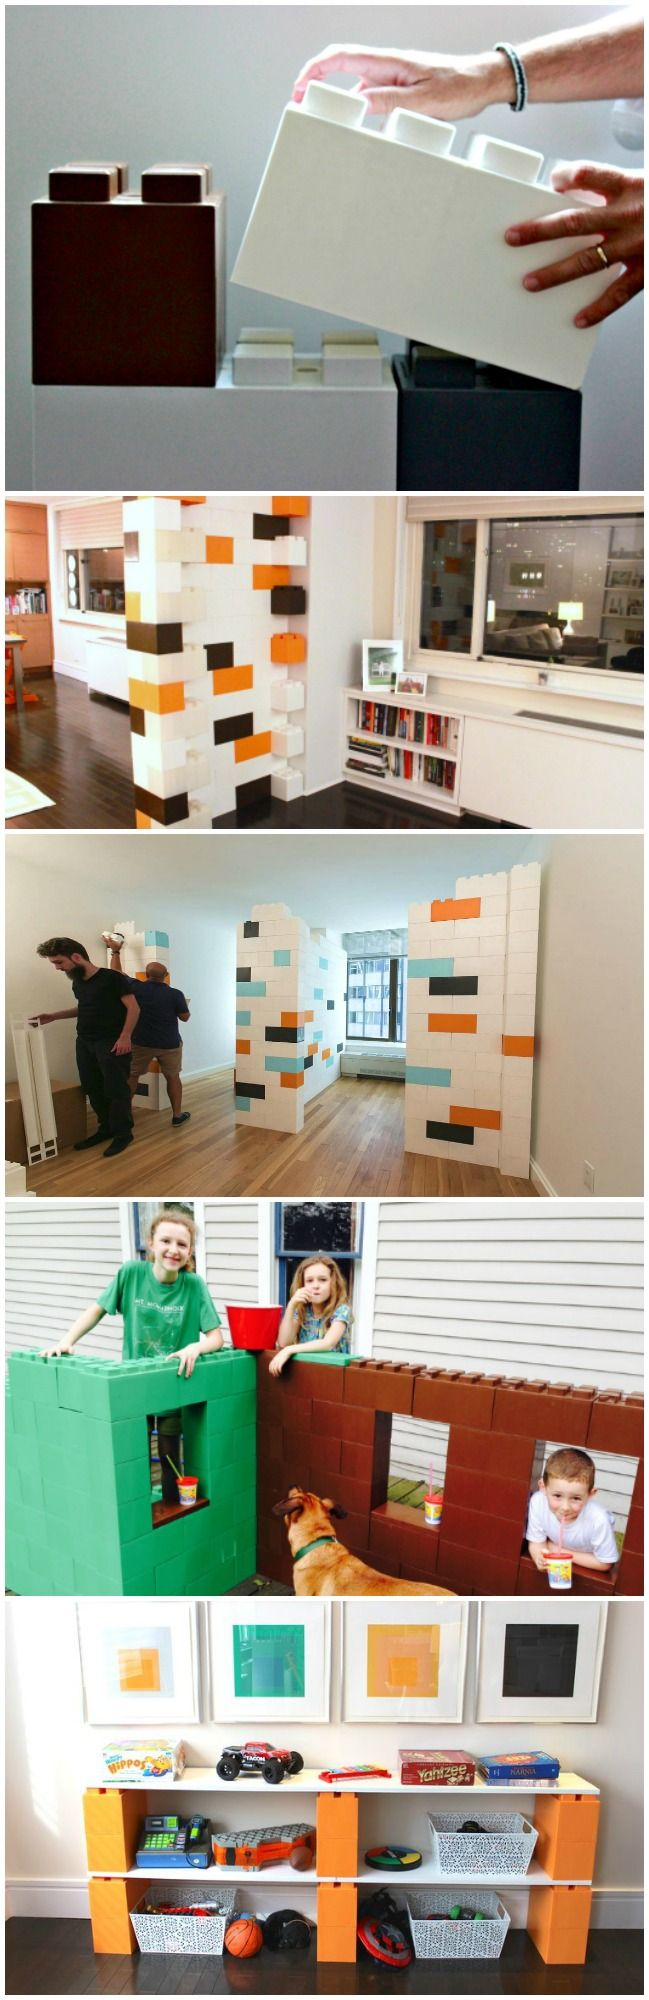 EverBlocks modular building blocks are perfect for all types of modular creations like furniture, room dividers, decor, props, displays and much more.